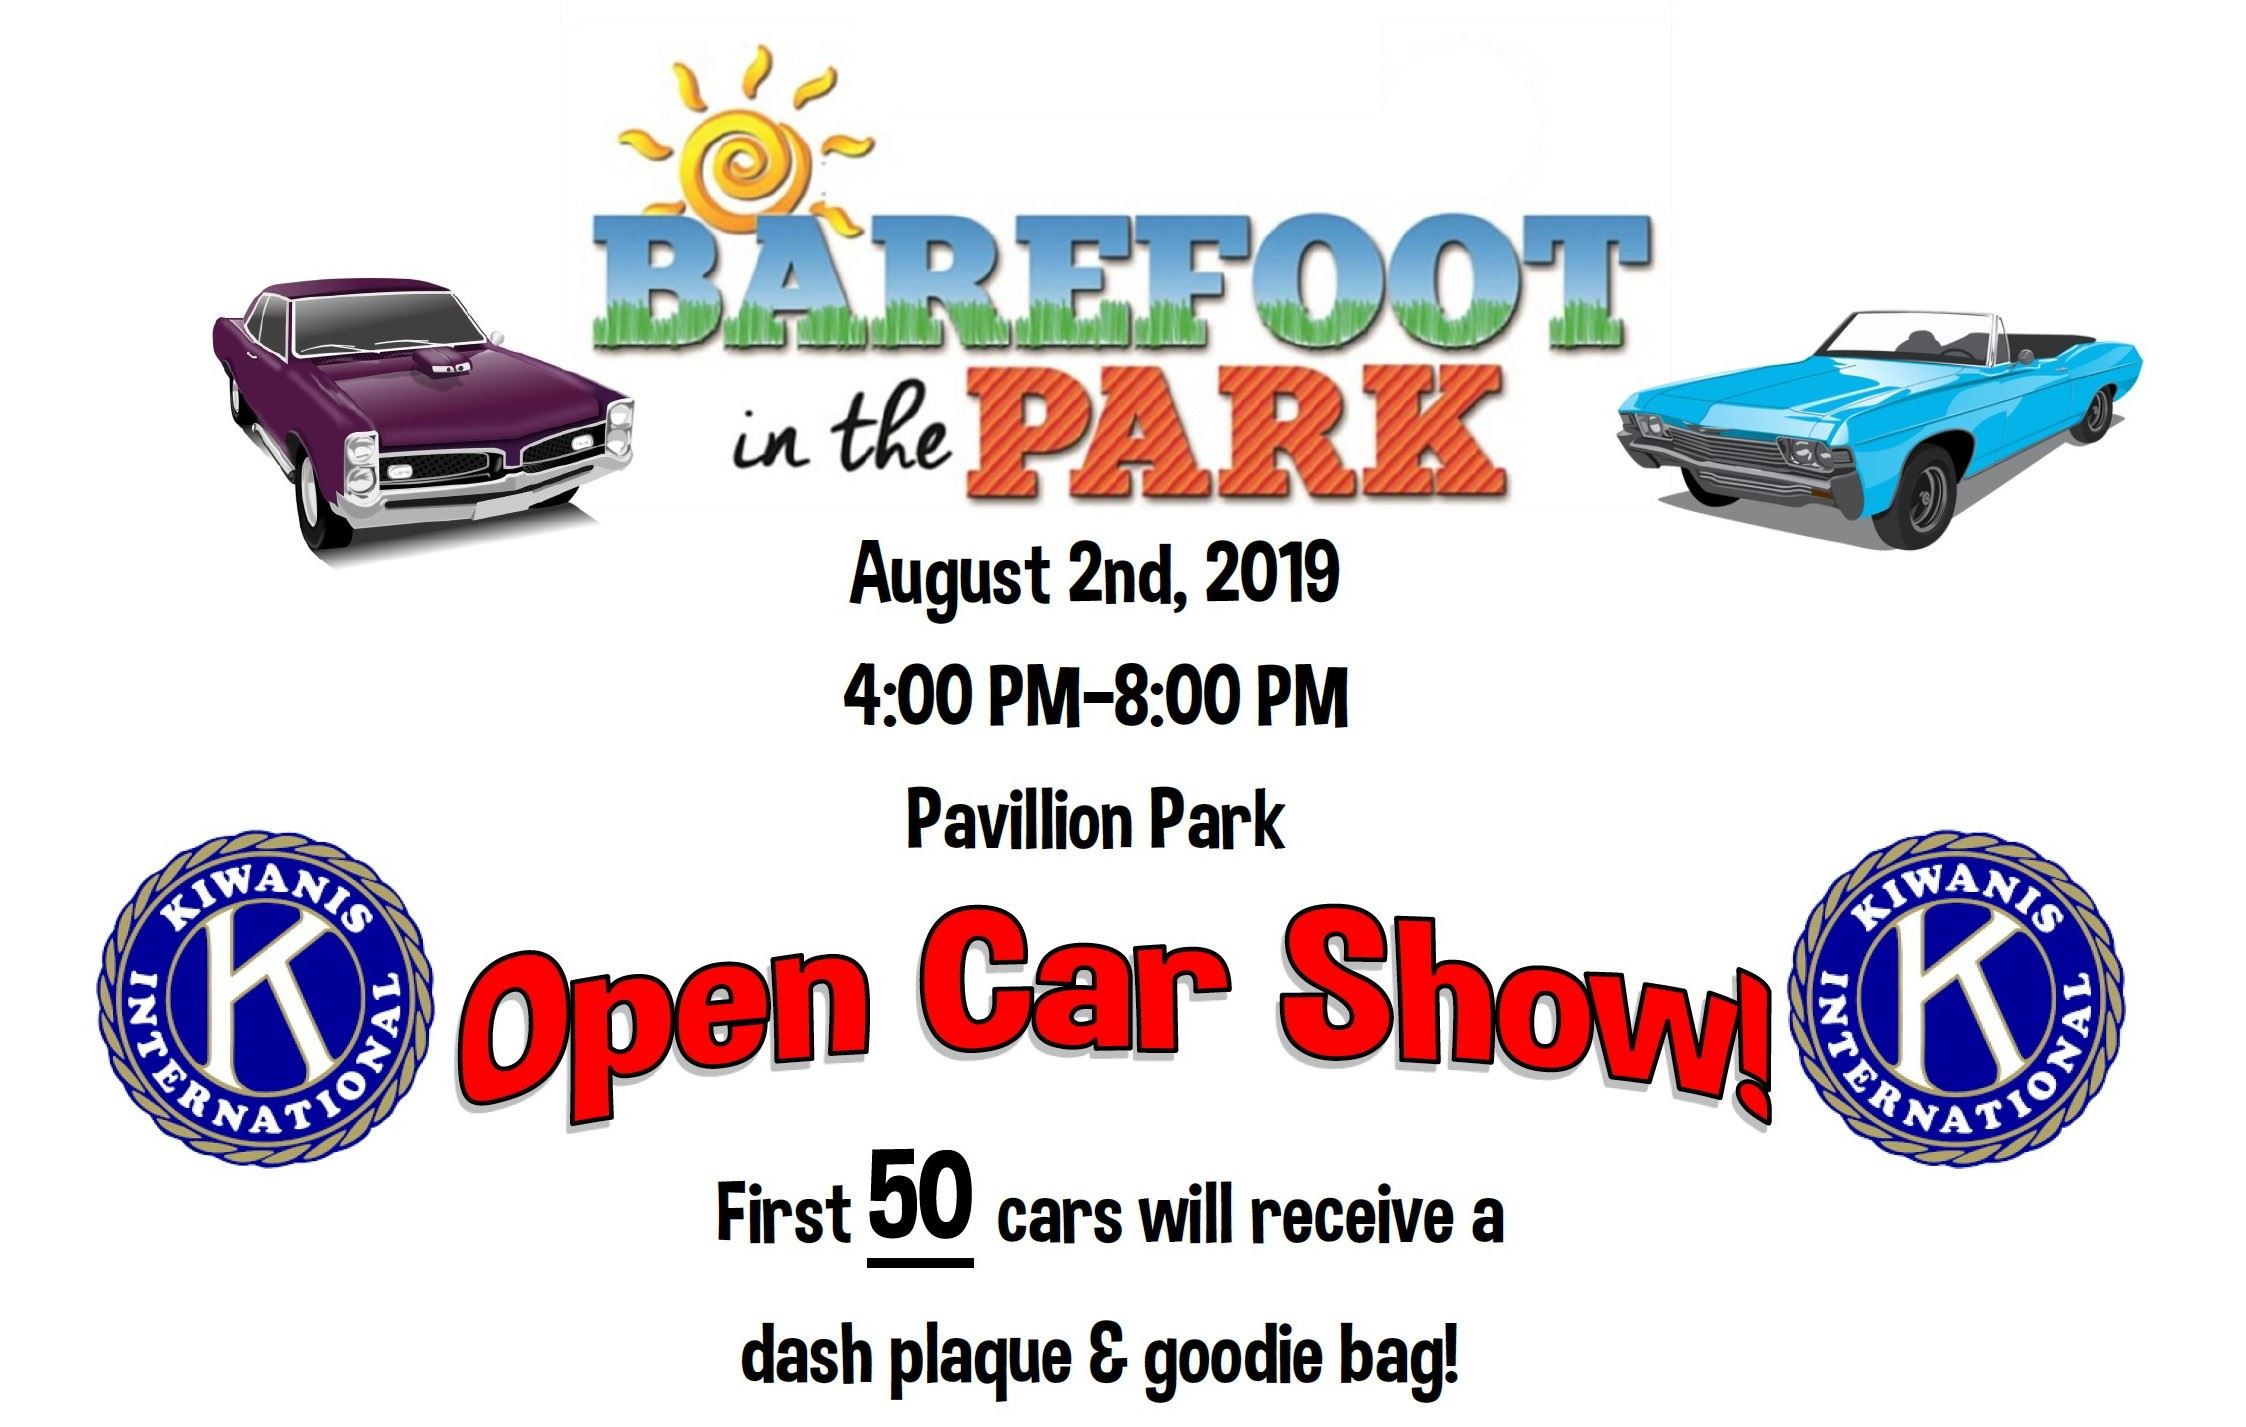 Car show Opens in new window